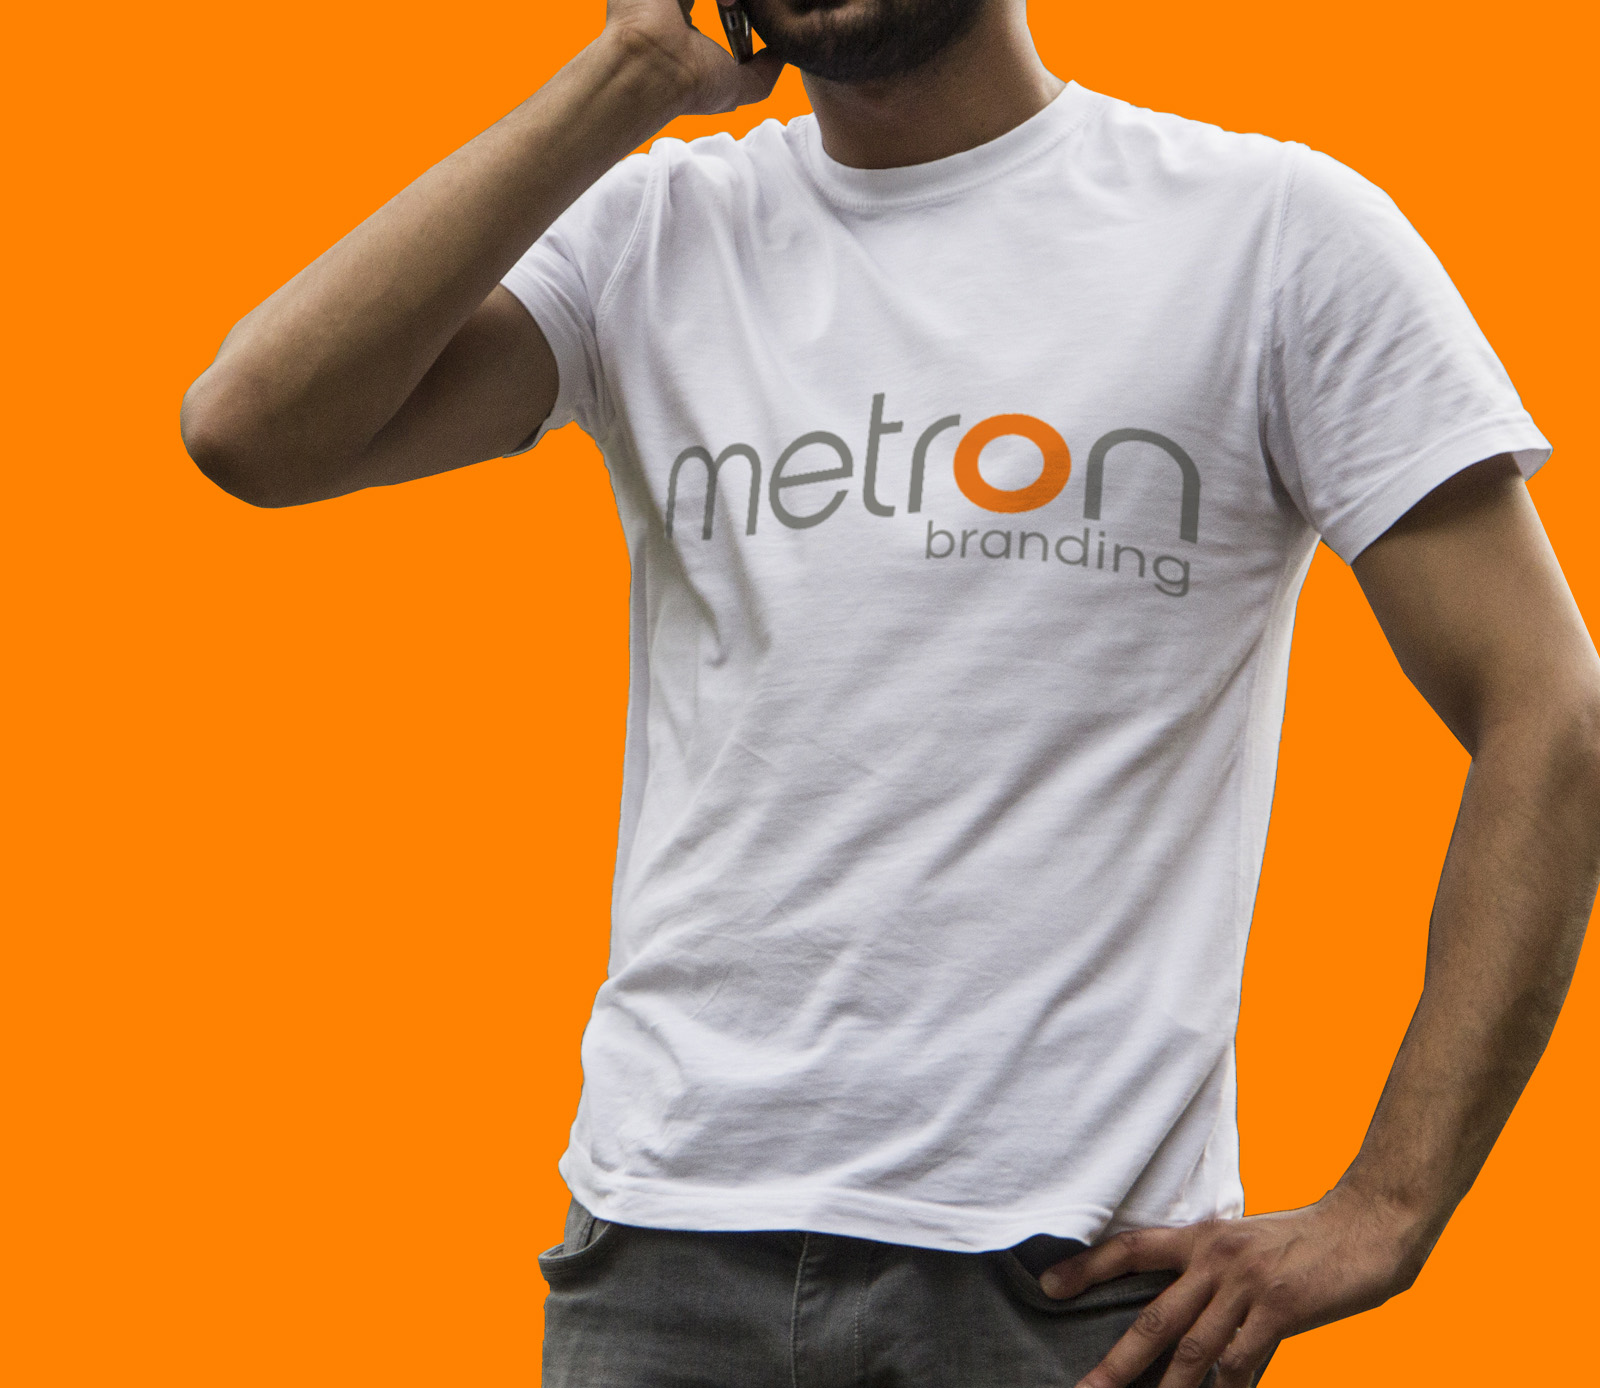 branded merch metron branding min